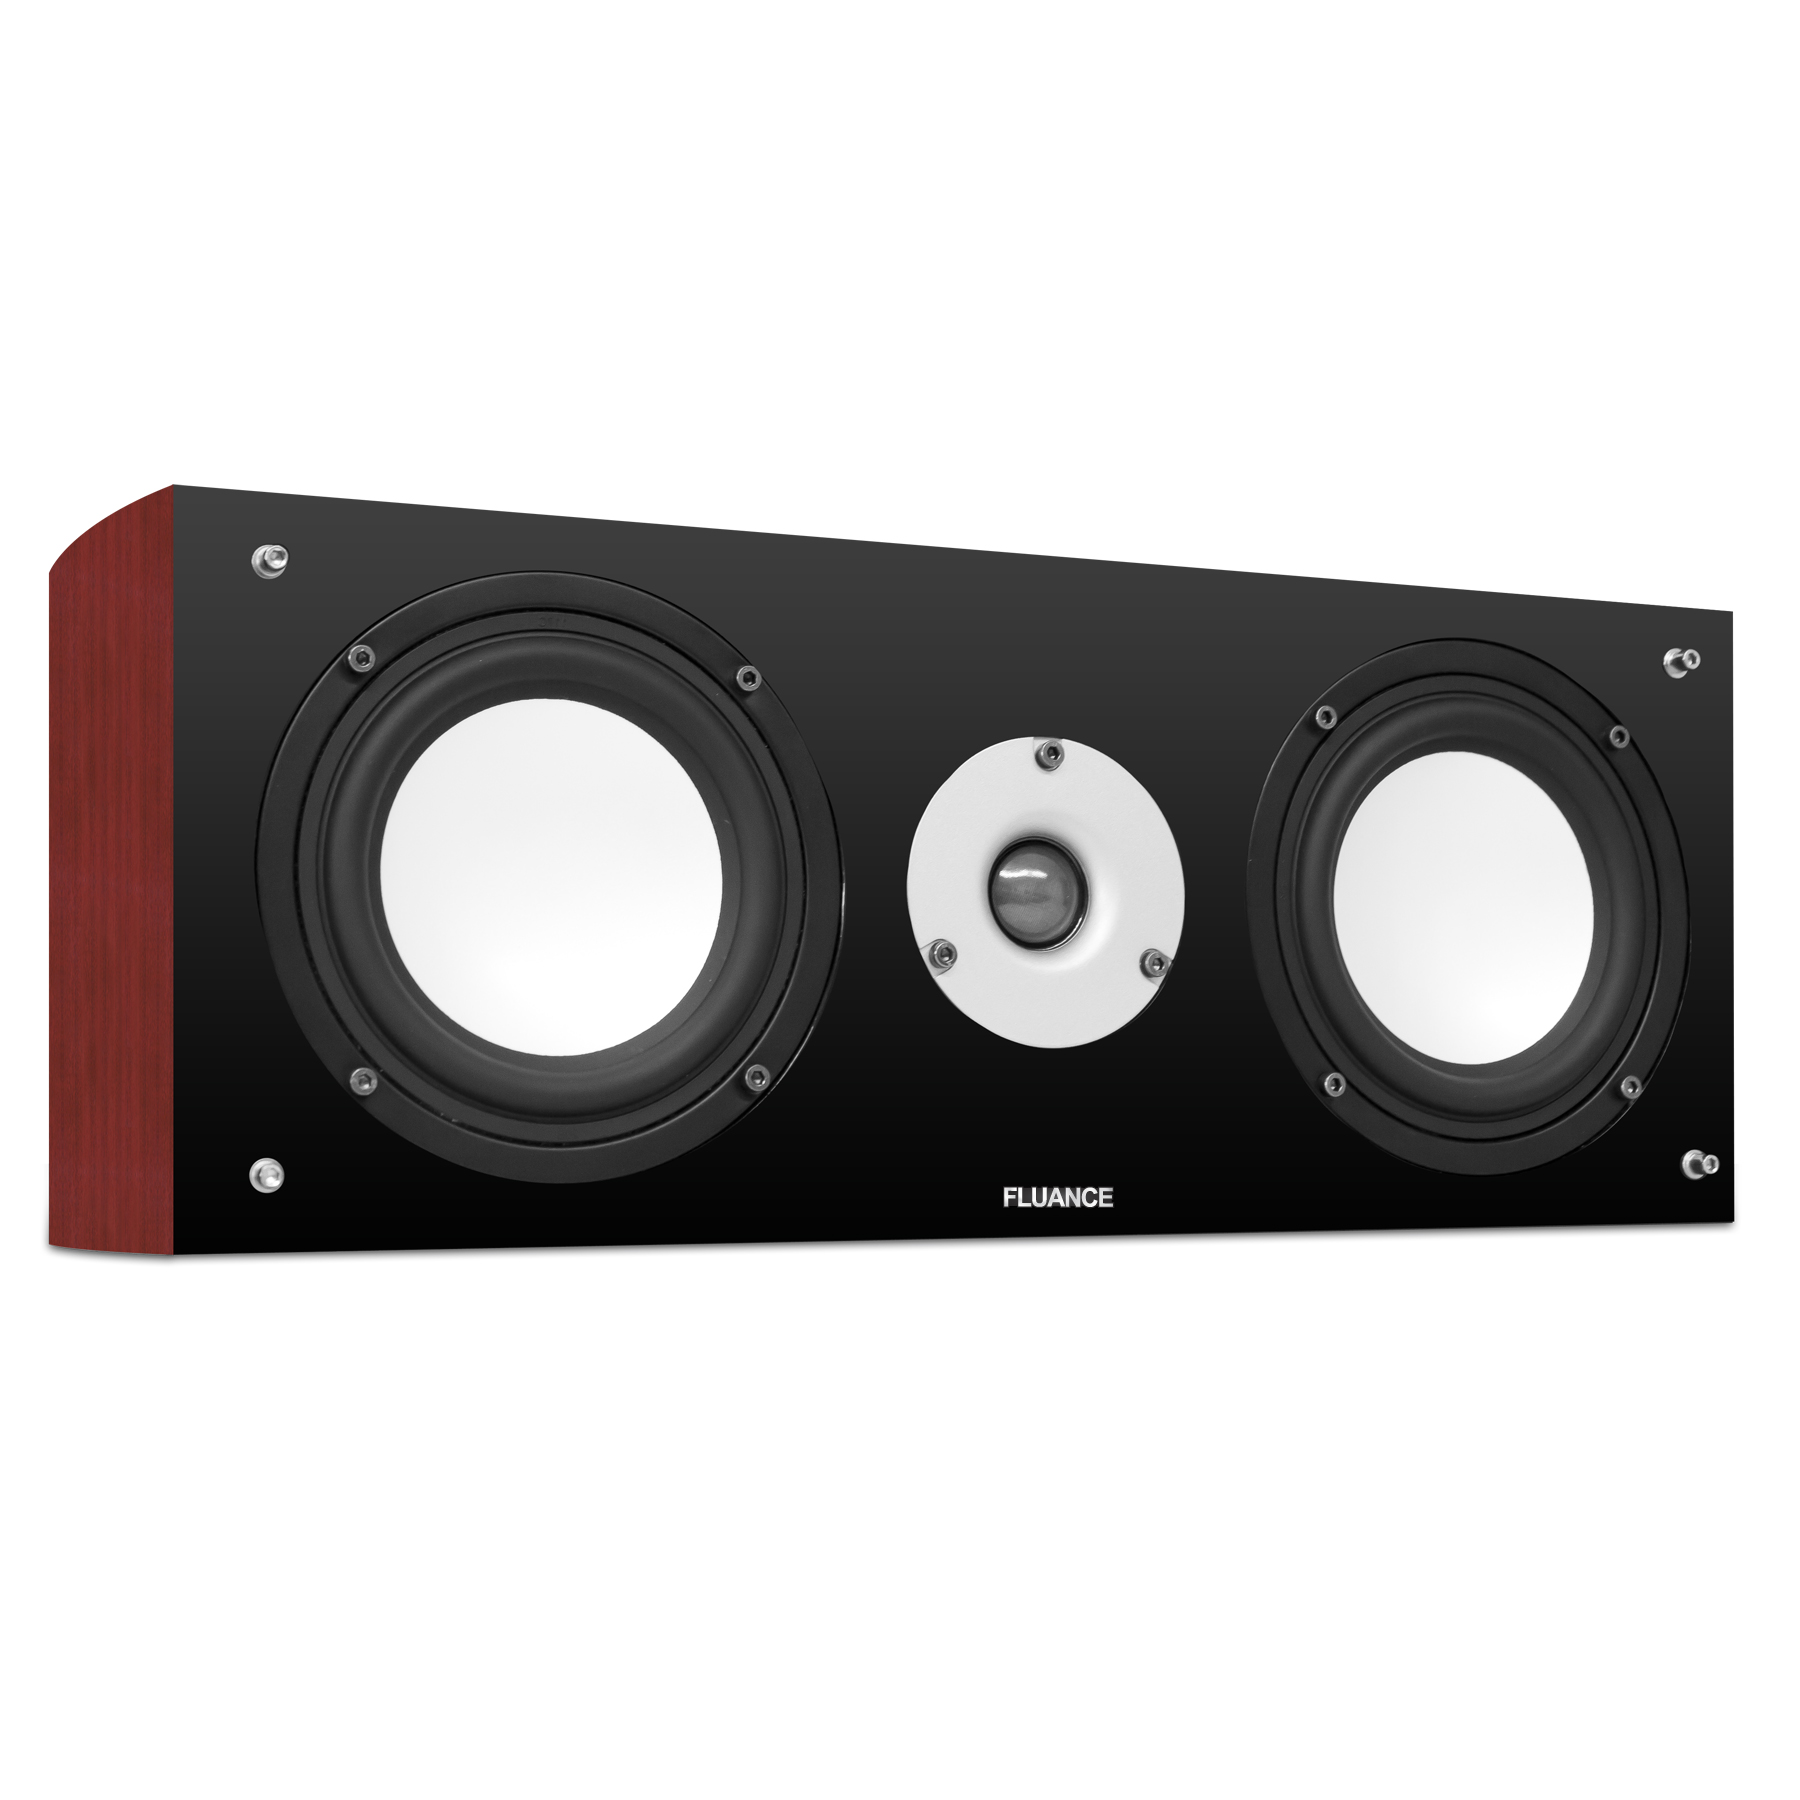 Polk Audio CS275 Center Speaker Superb CS 275 EBay besides 201352519875 furthermore Polkaudiotl2center in addition Klipsch PRO 6800 80W 2 Way In Ceiling Home Audio Speaker in addition 49. on tl2 polk audio center speaker